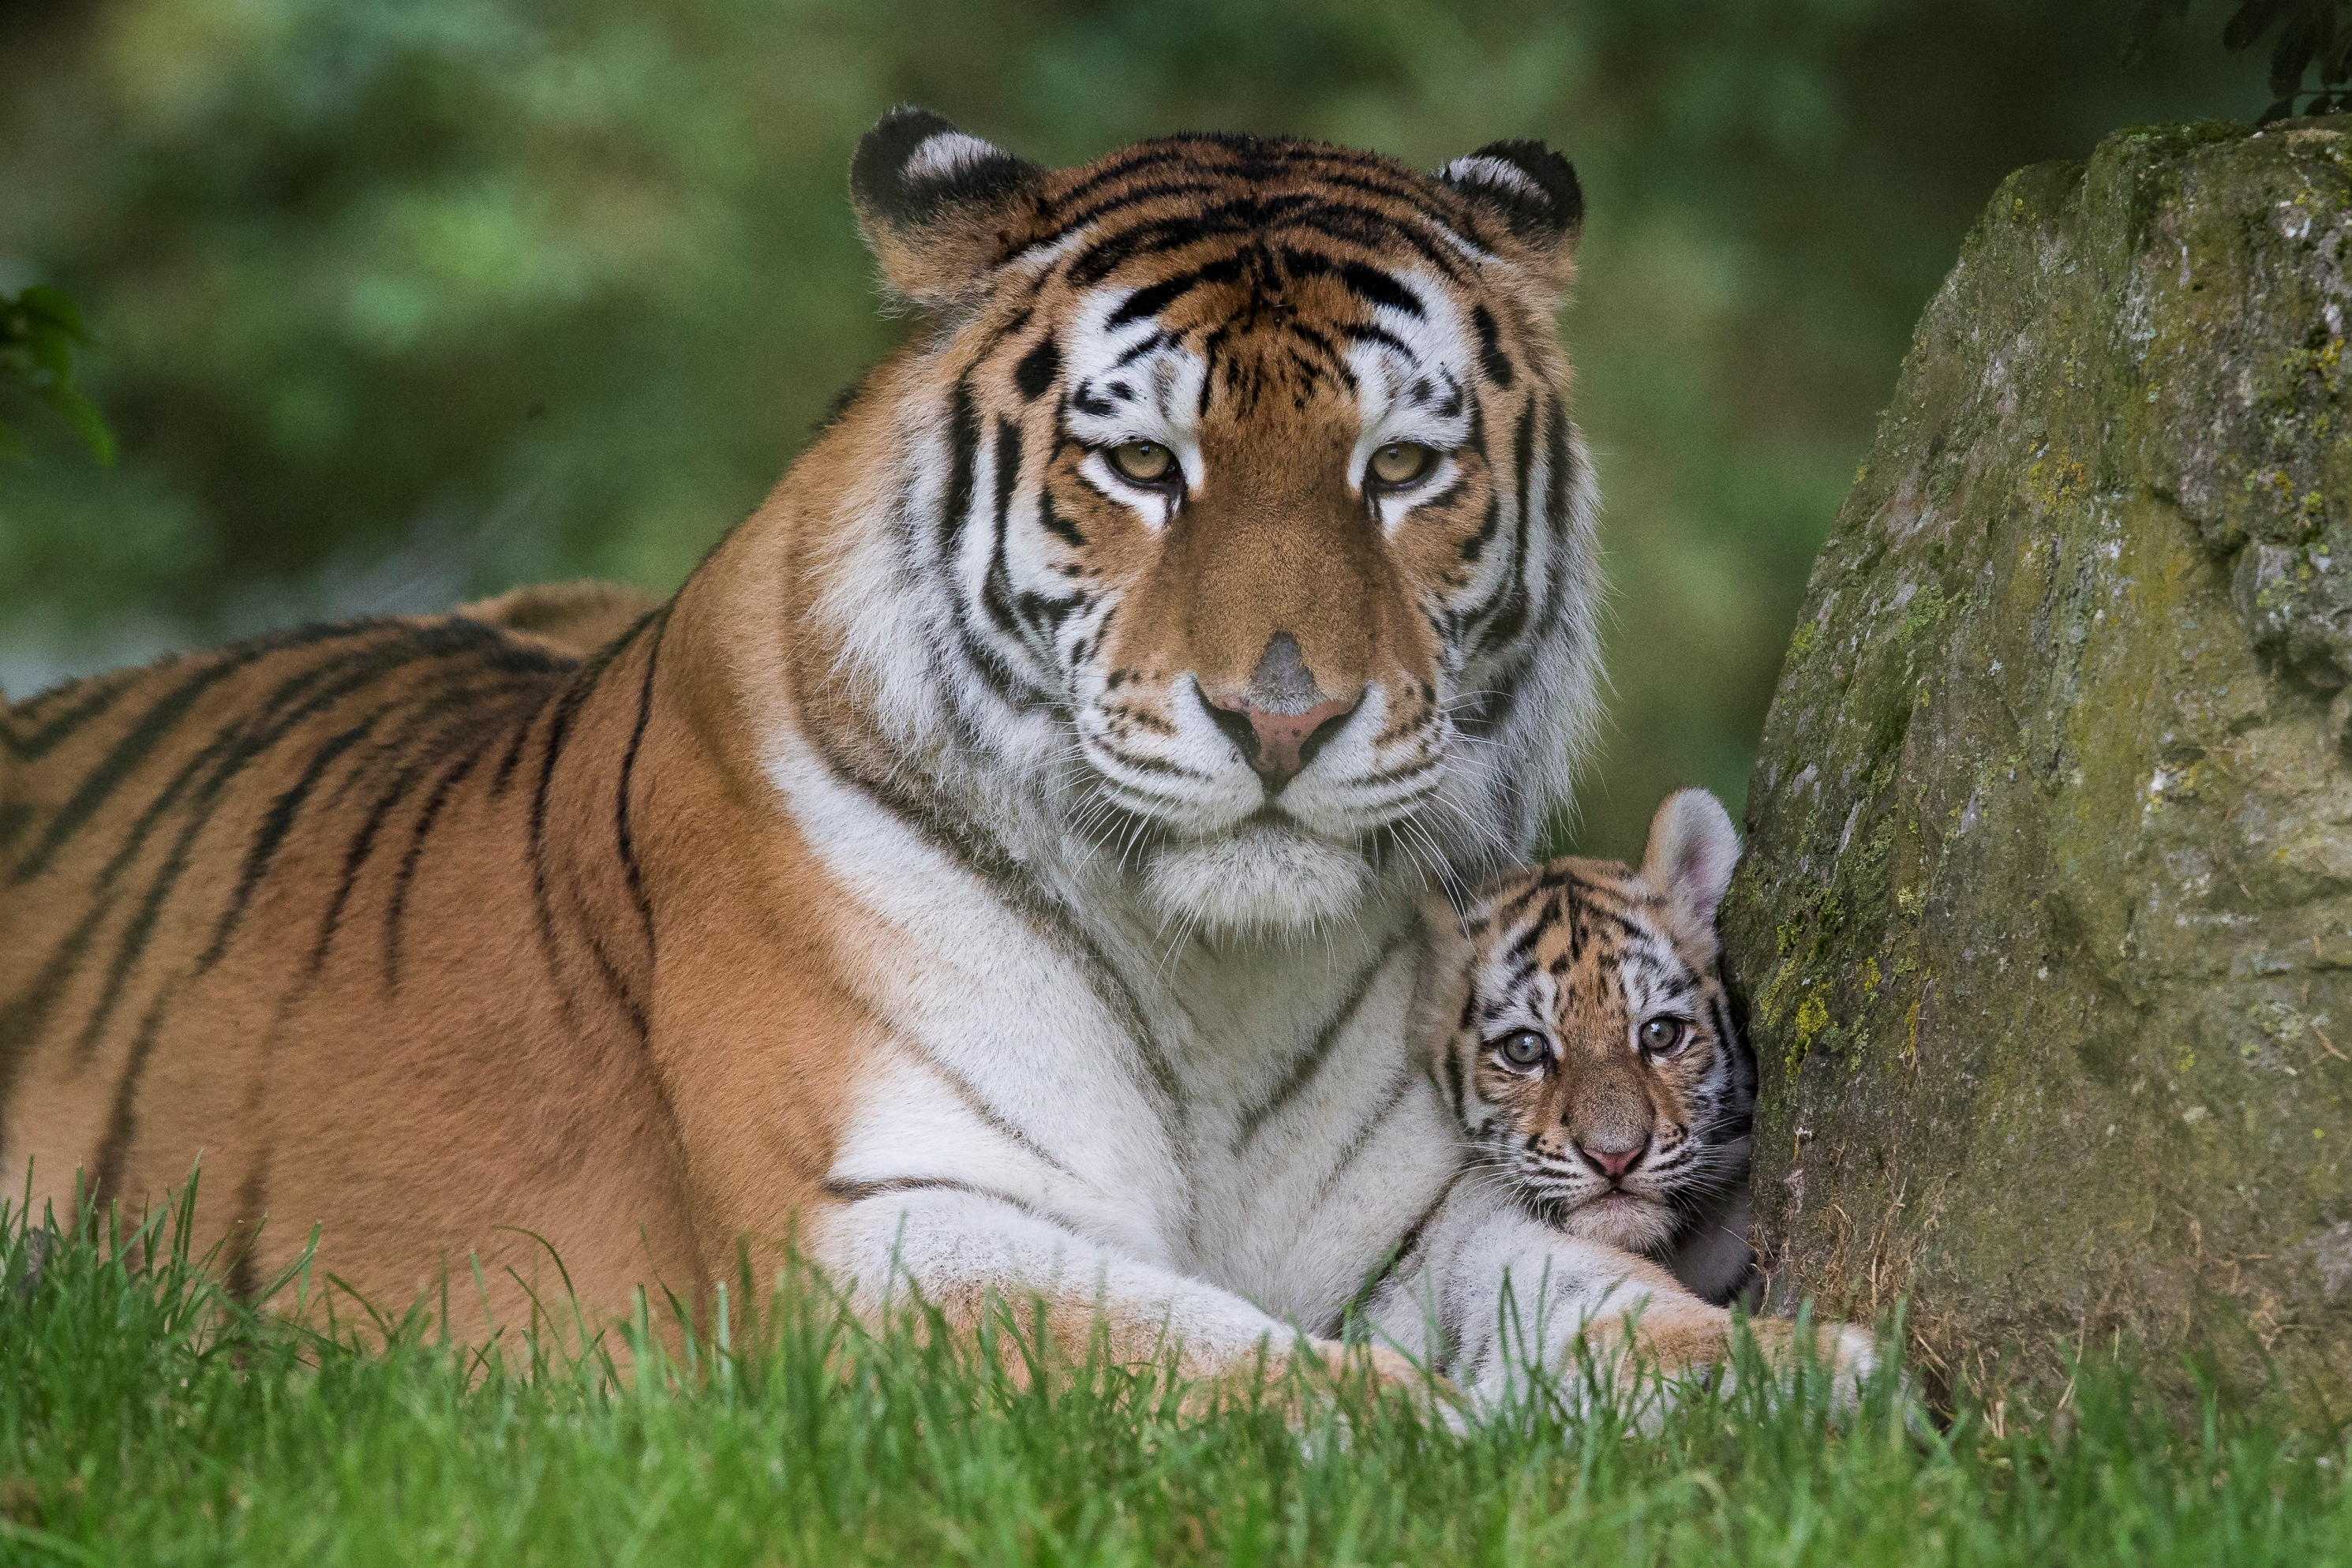 UPDATE! Our tiger cubs have been named!, at The Zoo